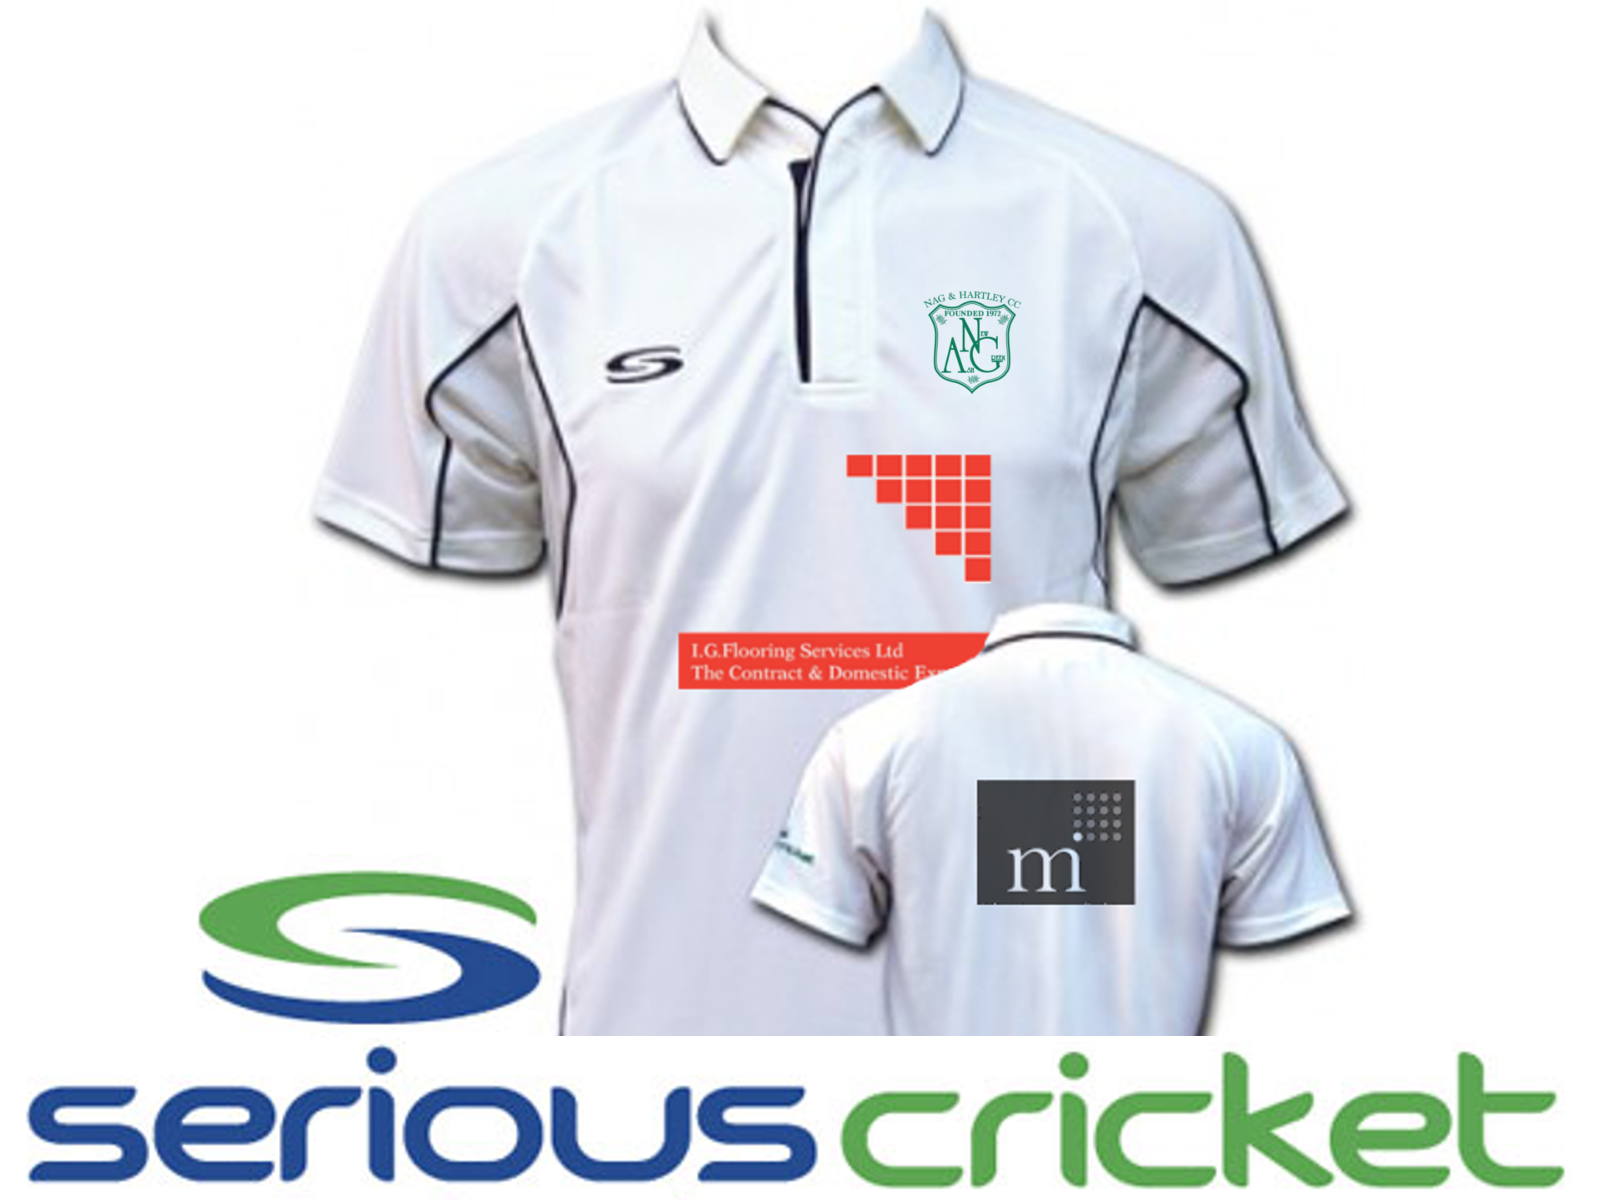 Club Kit from Serious Cricket